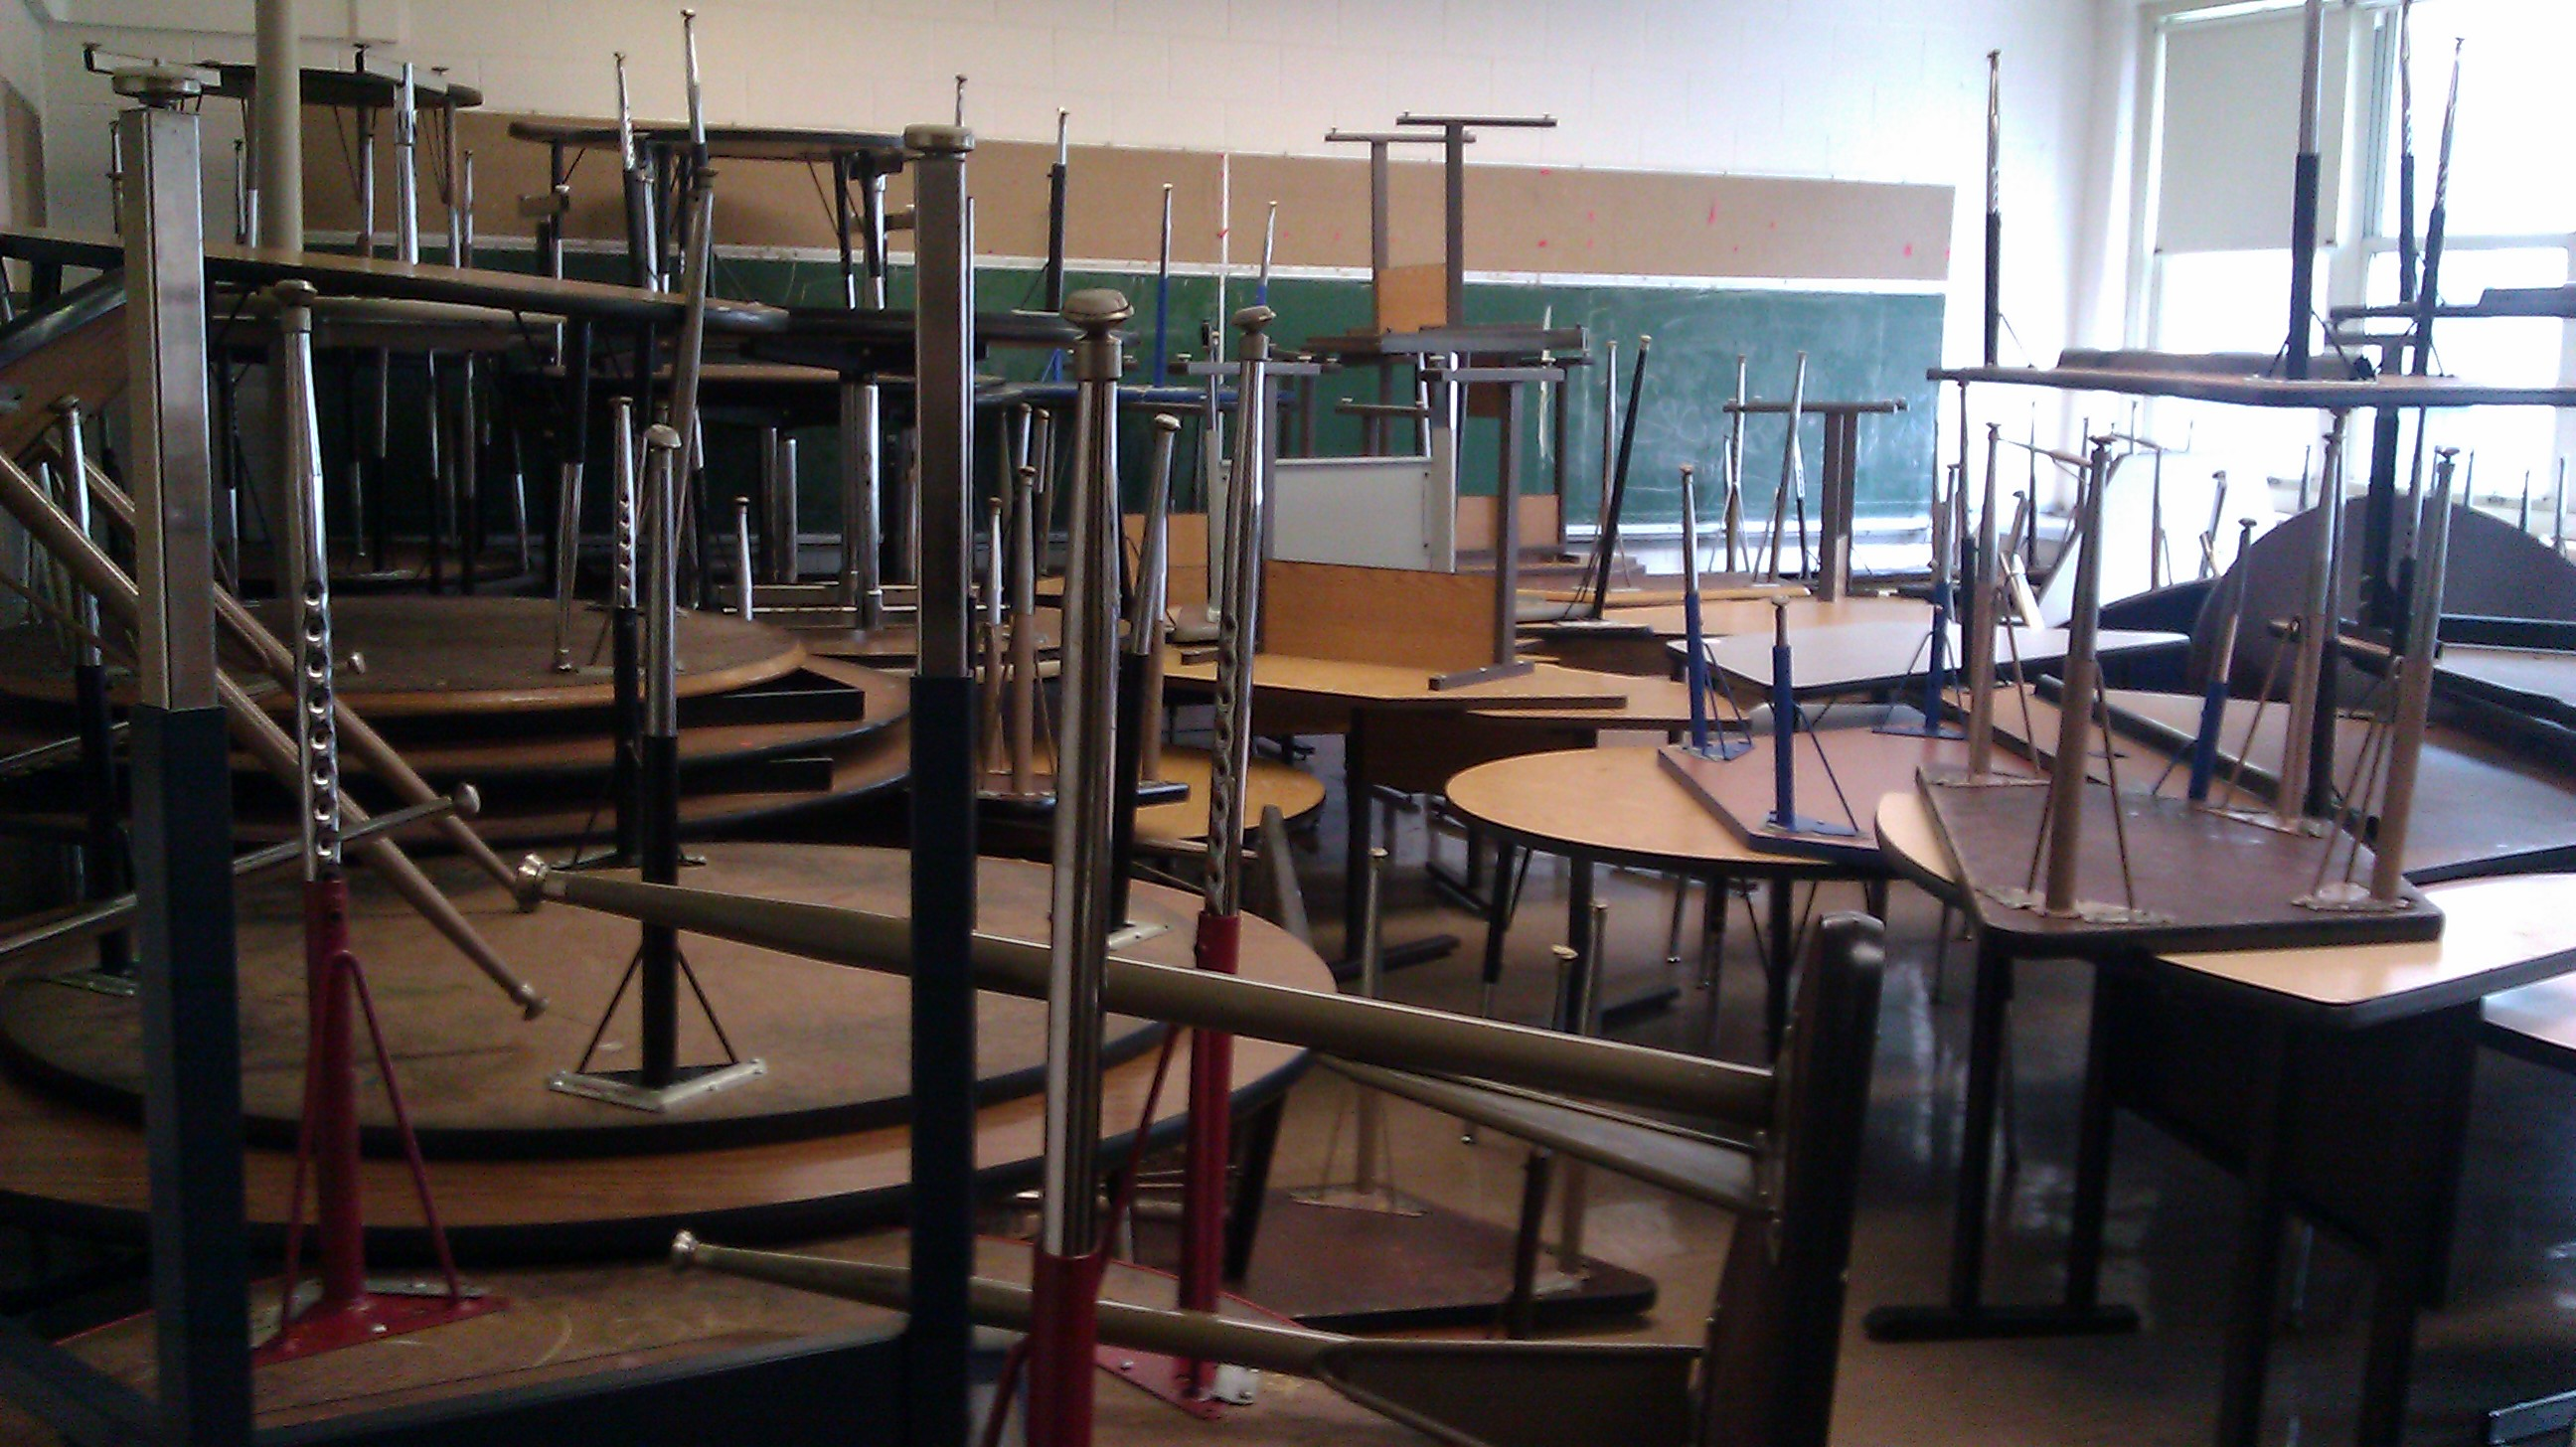 Classroom 206 at Paderewski Elementary Learning Academy now holds circle and trapezoid school tables. (WBEZ/Linda Lutton)